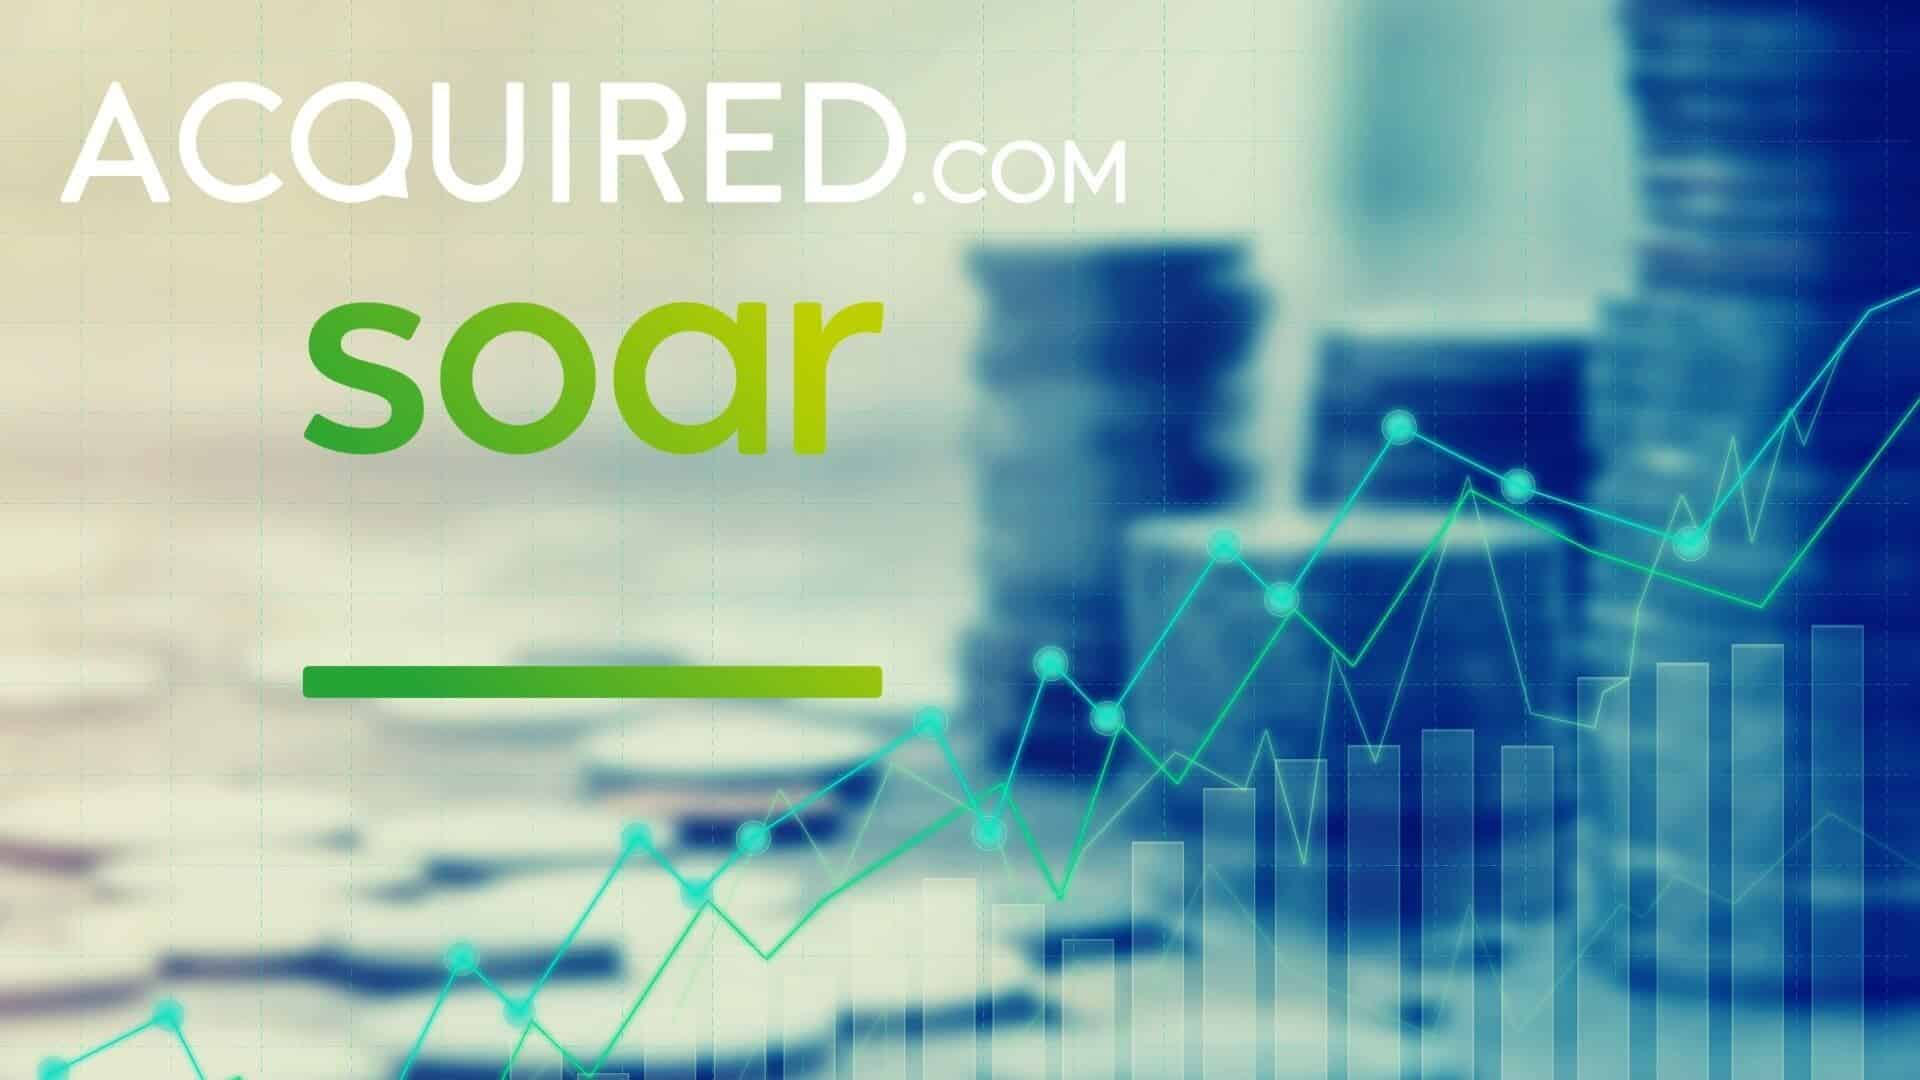 Soar and Acquired.com Team Up to Create a Transparent Service Platform